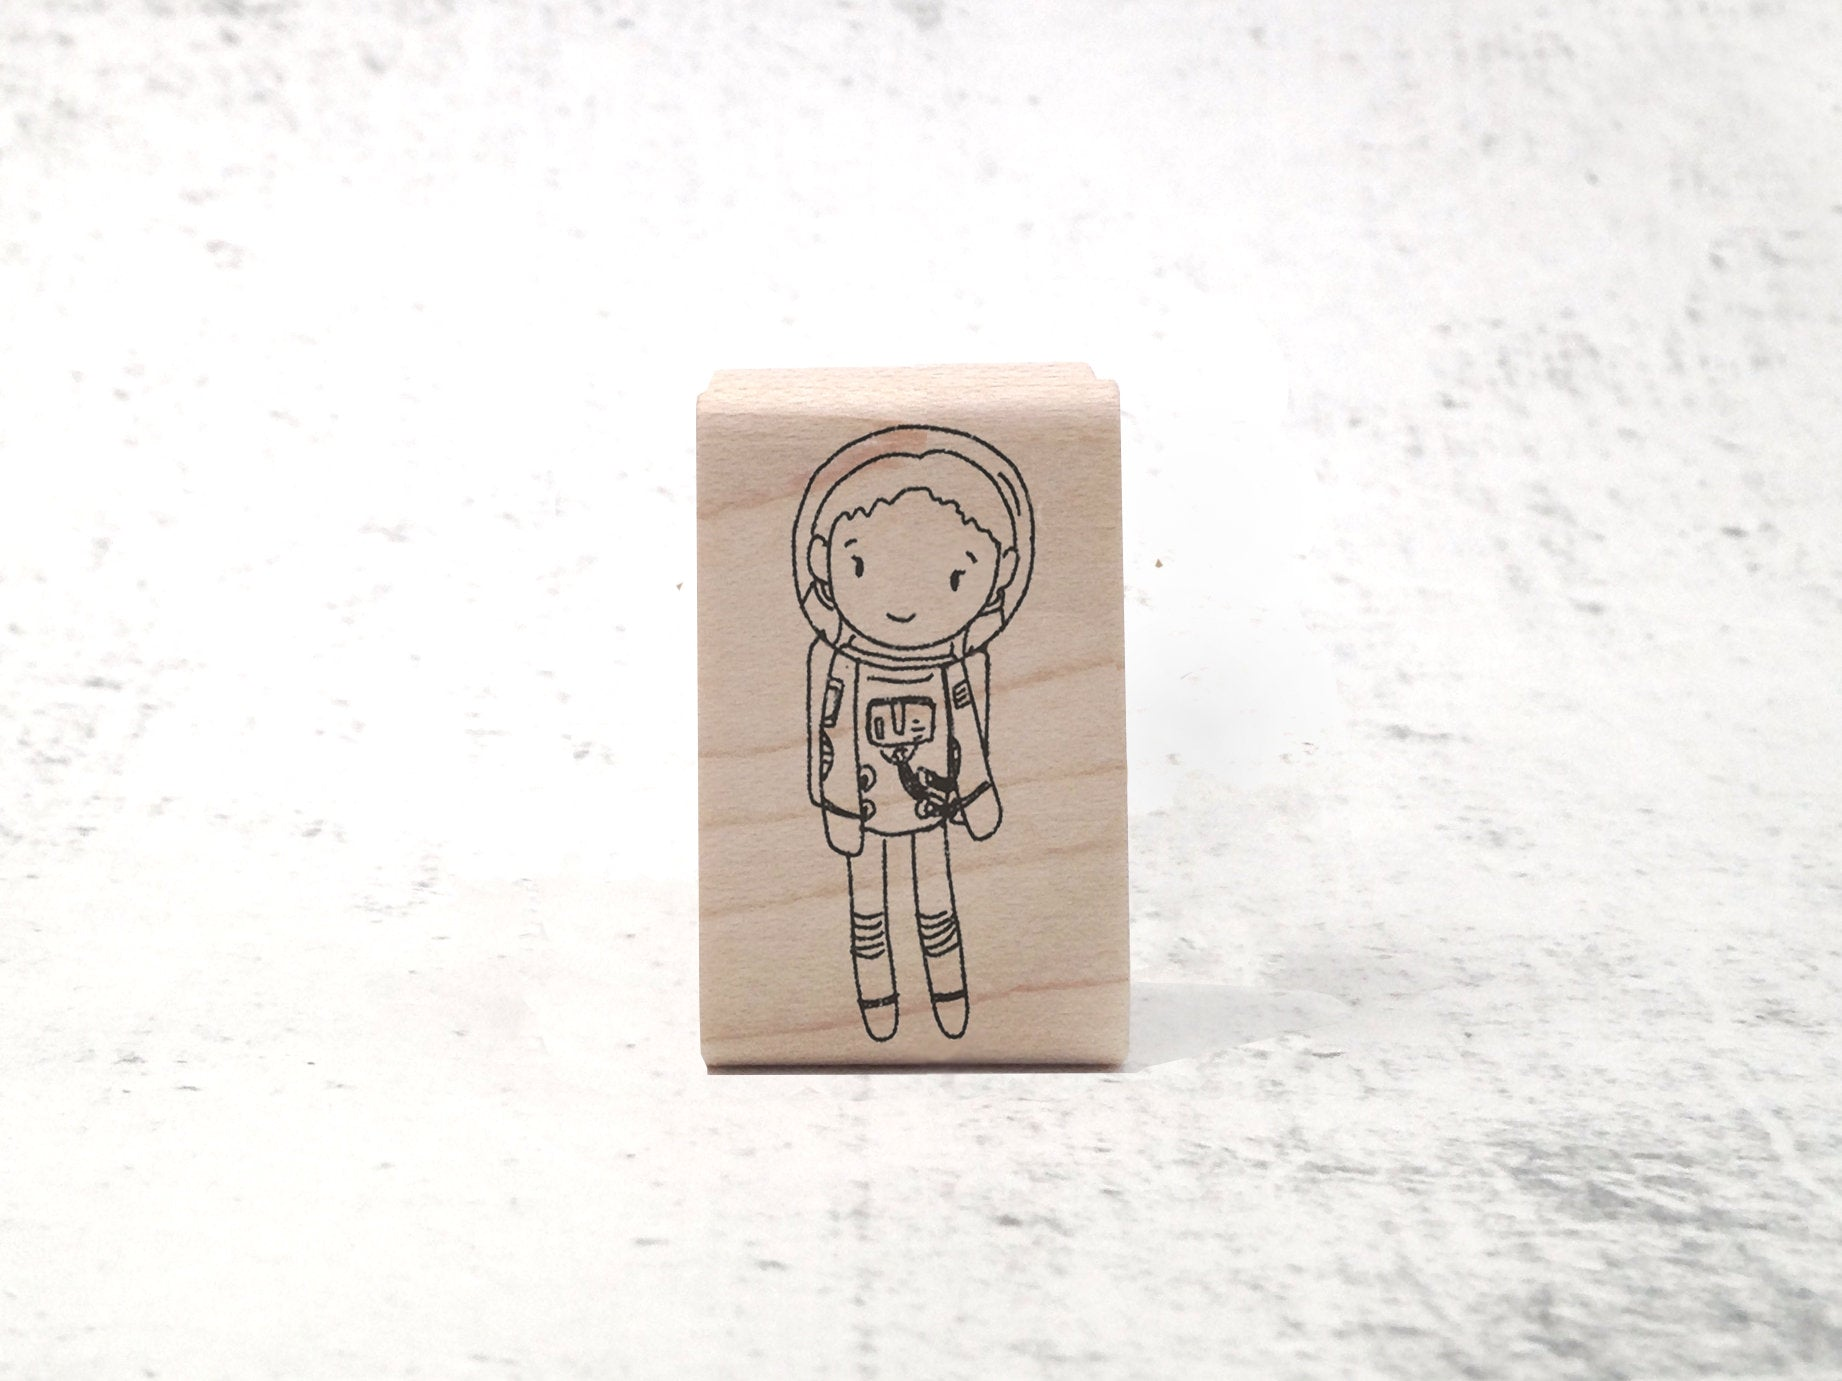 The Astronaut Girl - Childrens Astronaut & Astronomy Stamp -  Space Rubber Stamp